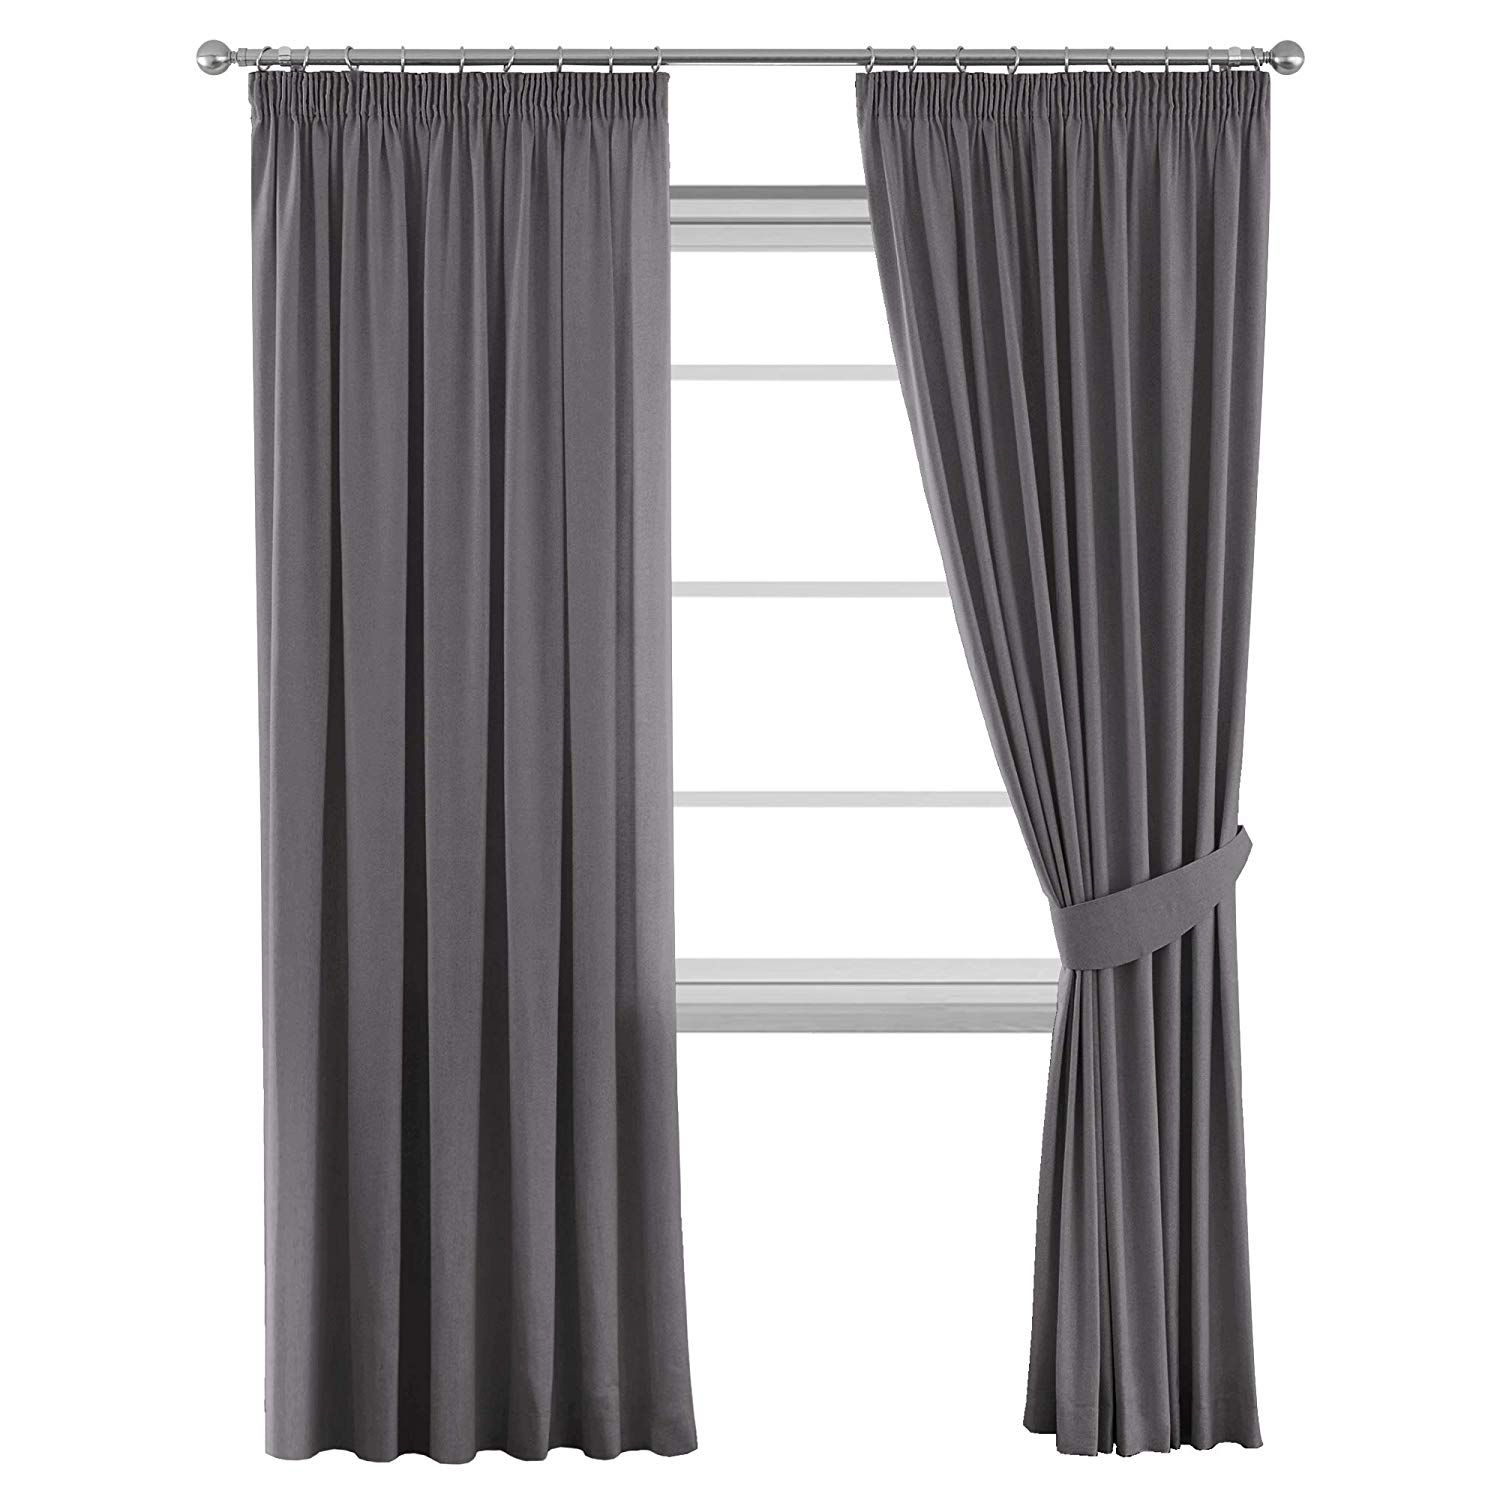 H Versailtex Solid Thermal Insulated Blackout Pencil Pleat Anti Mite Curtains For Bedroom With Two Free Grey Pencil Pleat Curtains Curtains Thermal Curtains